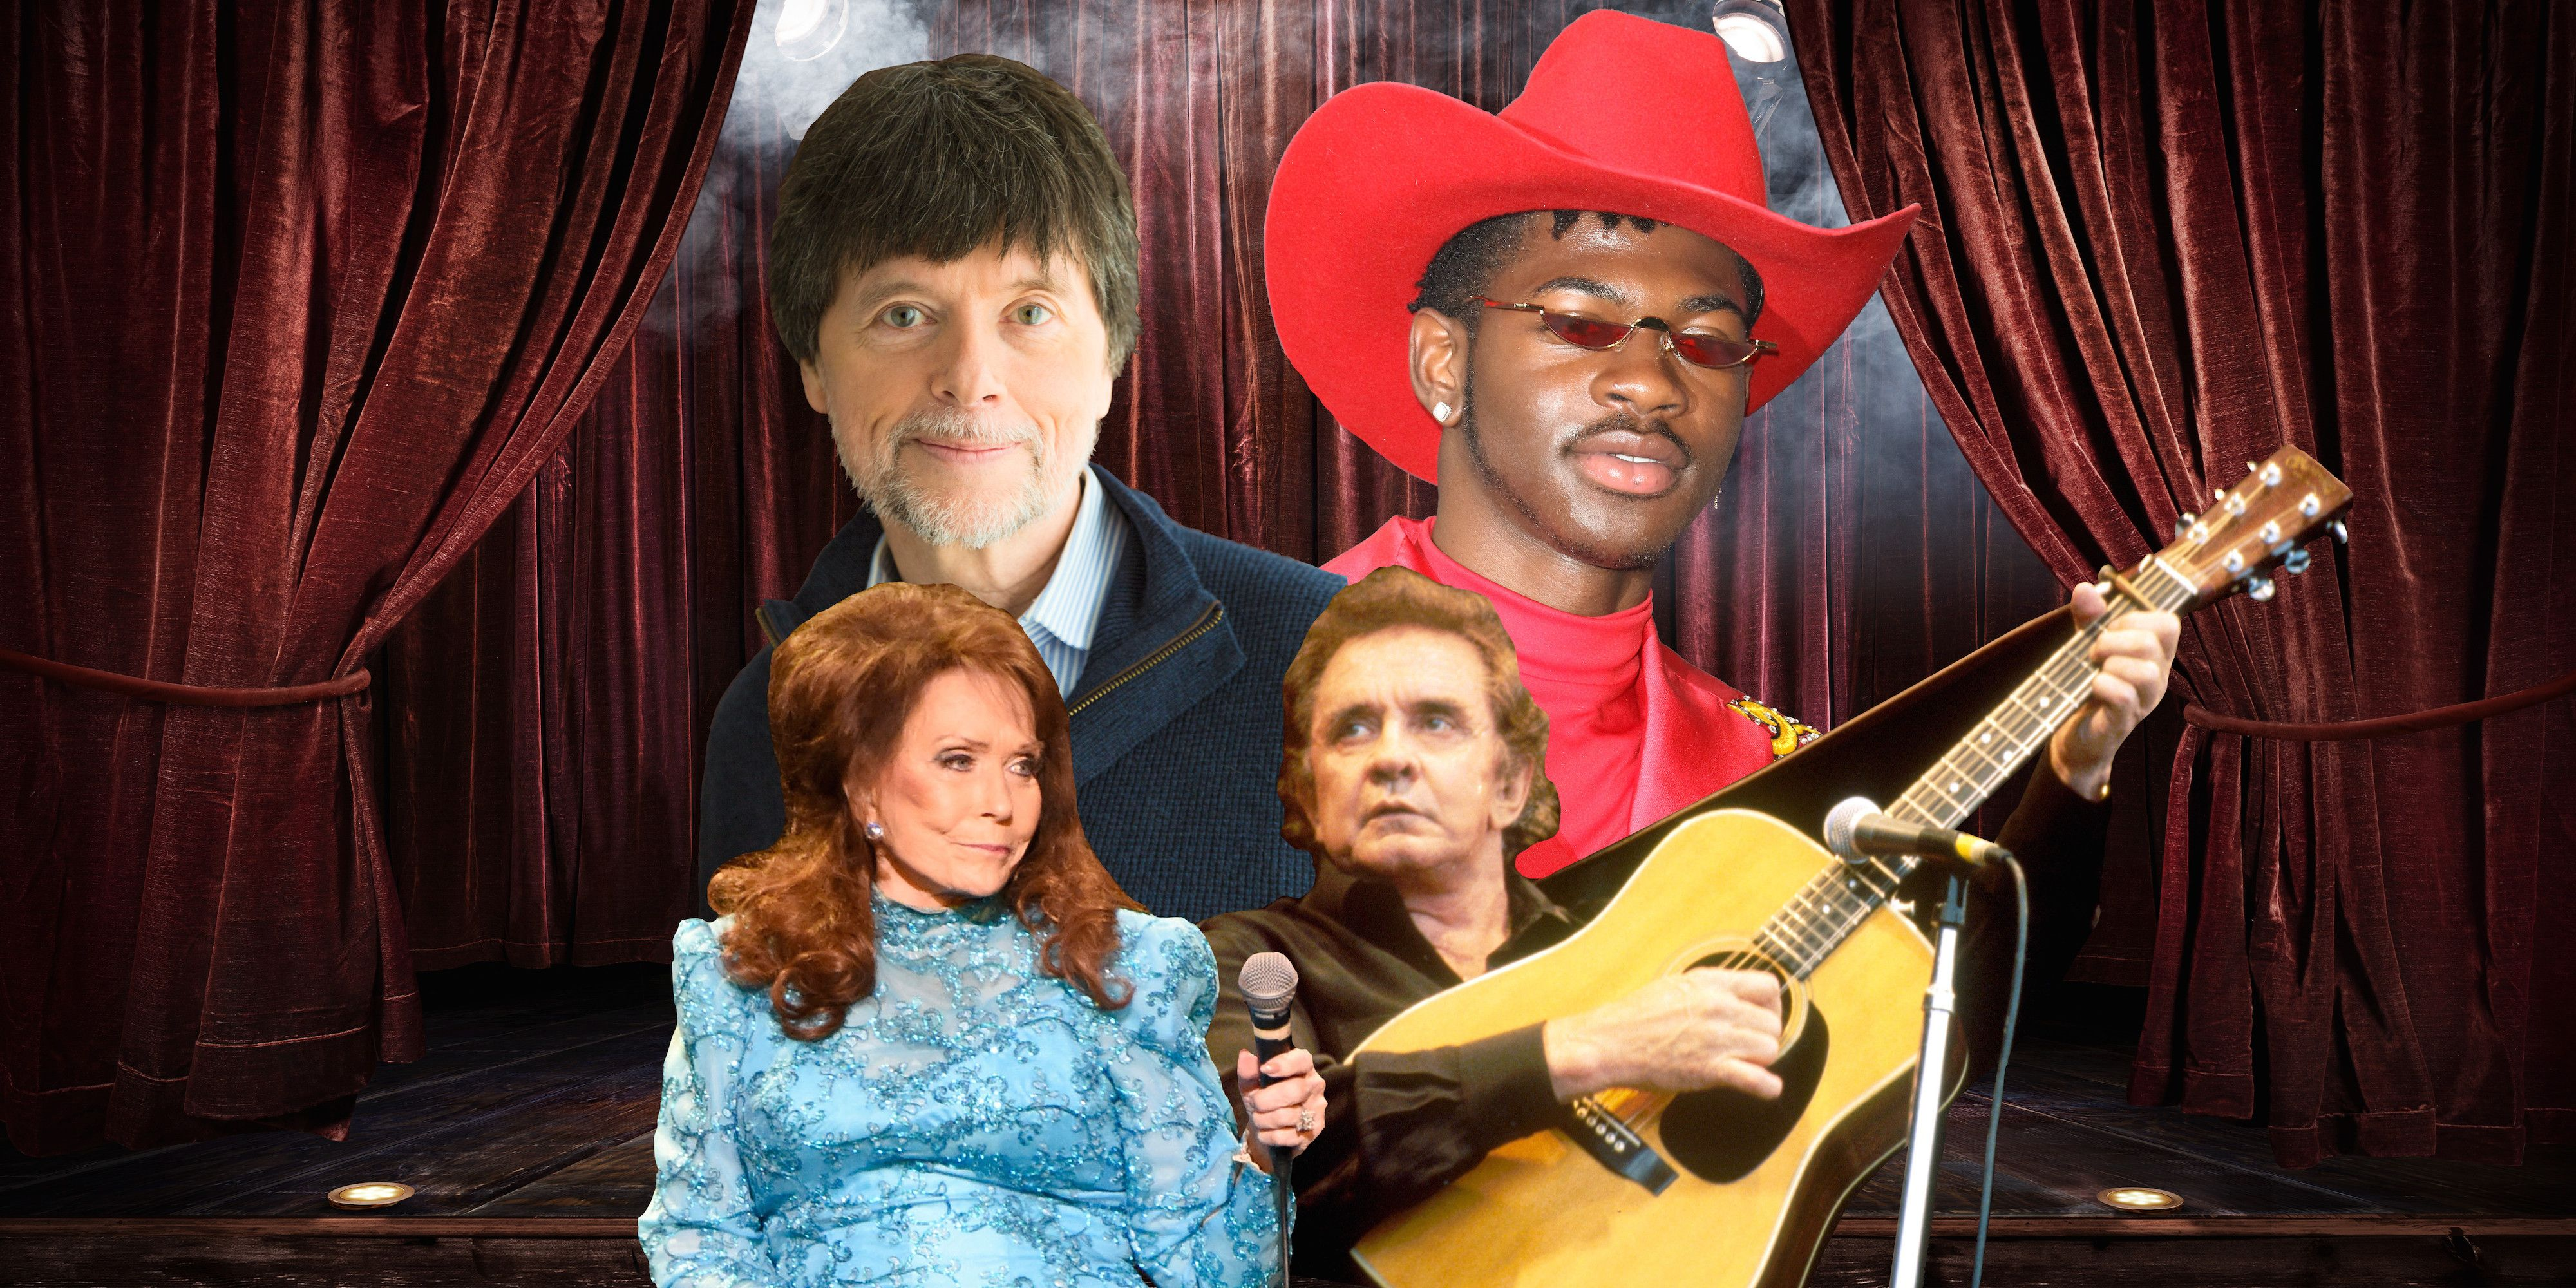 For Ken Burns, Country Music Tells the Story of Race, Class, and Inclusion in American History